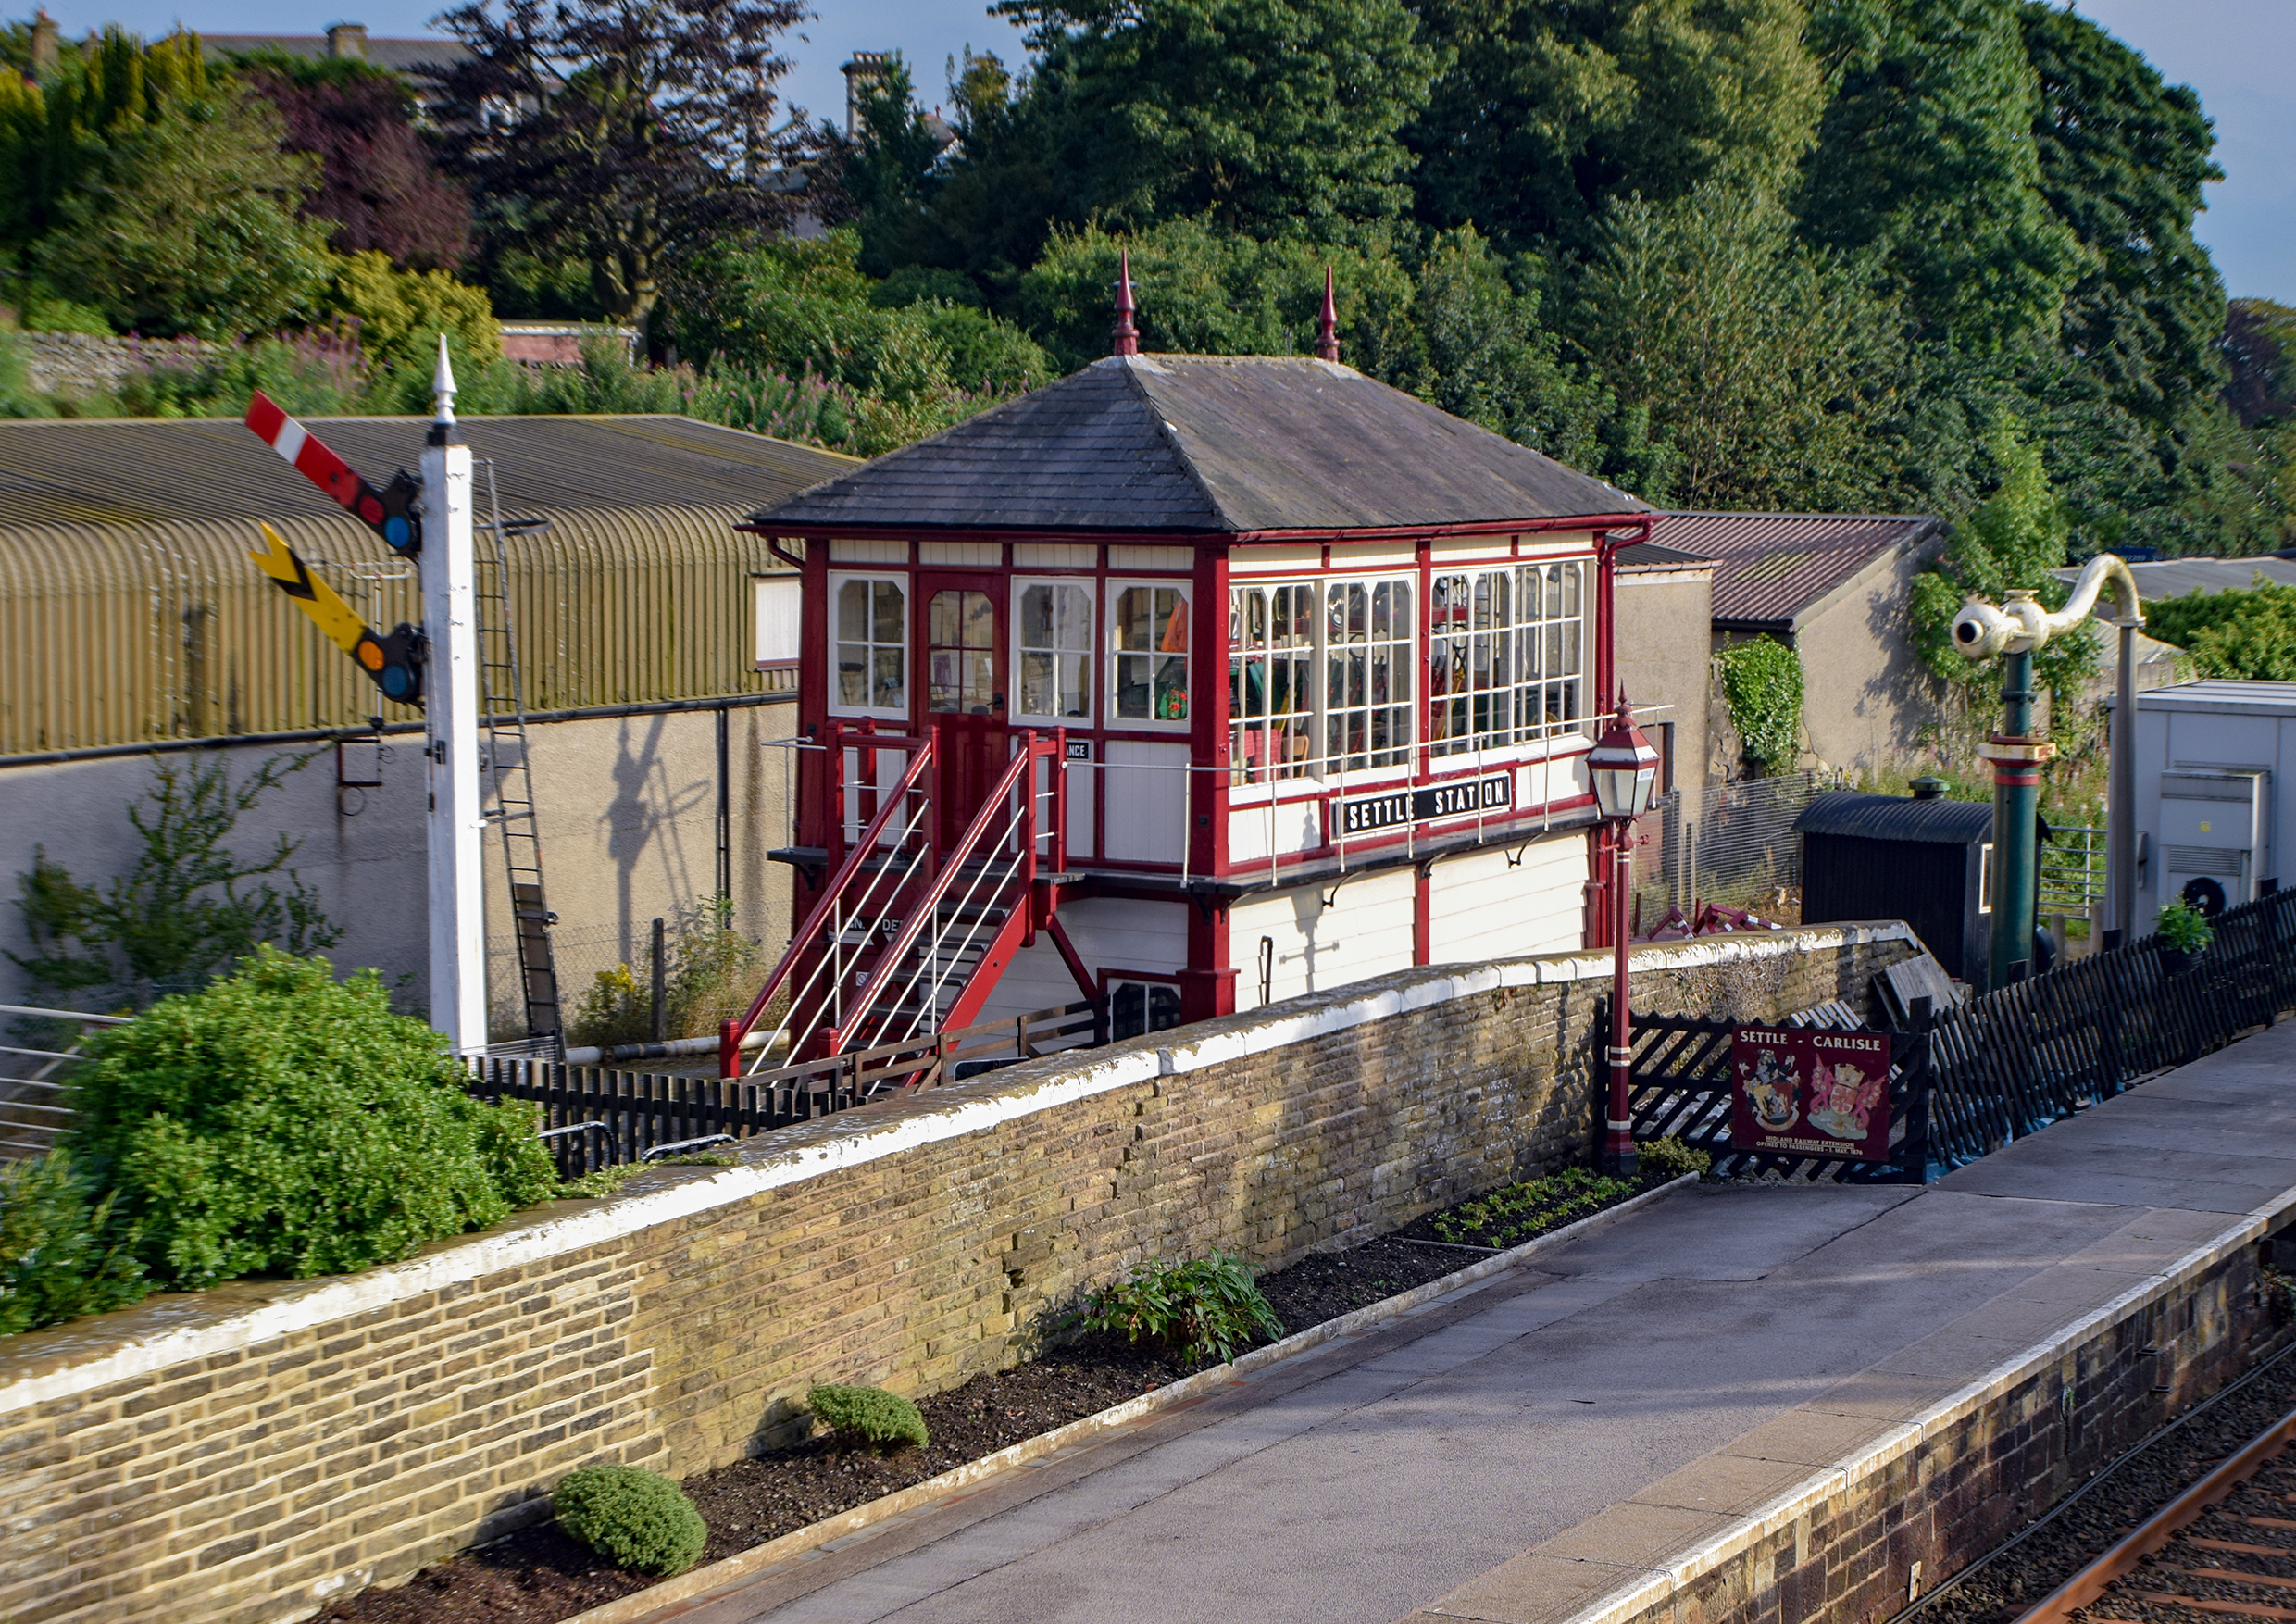 Signal Box at Settle Railway Station.